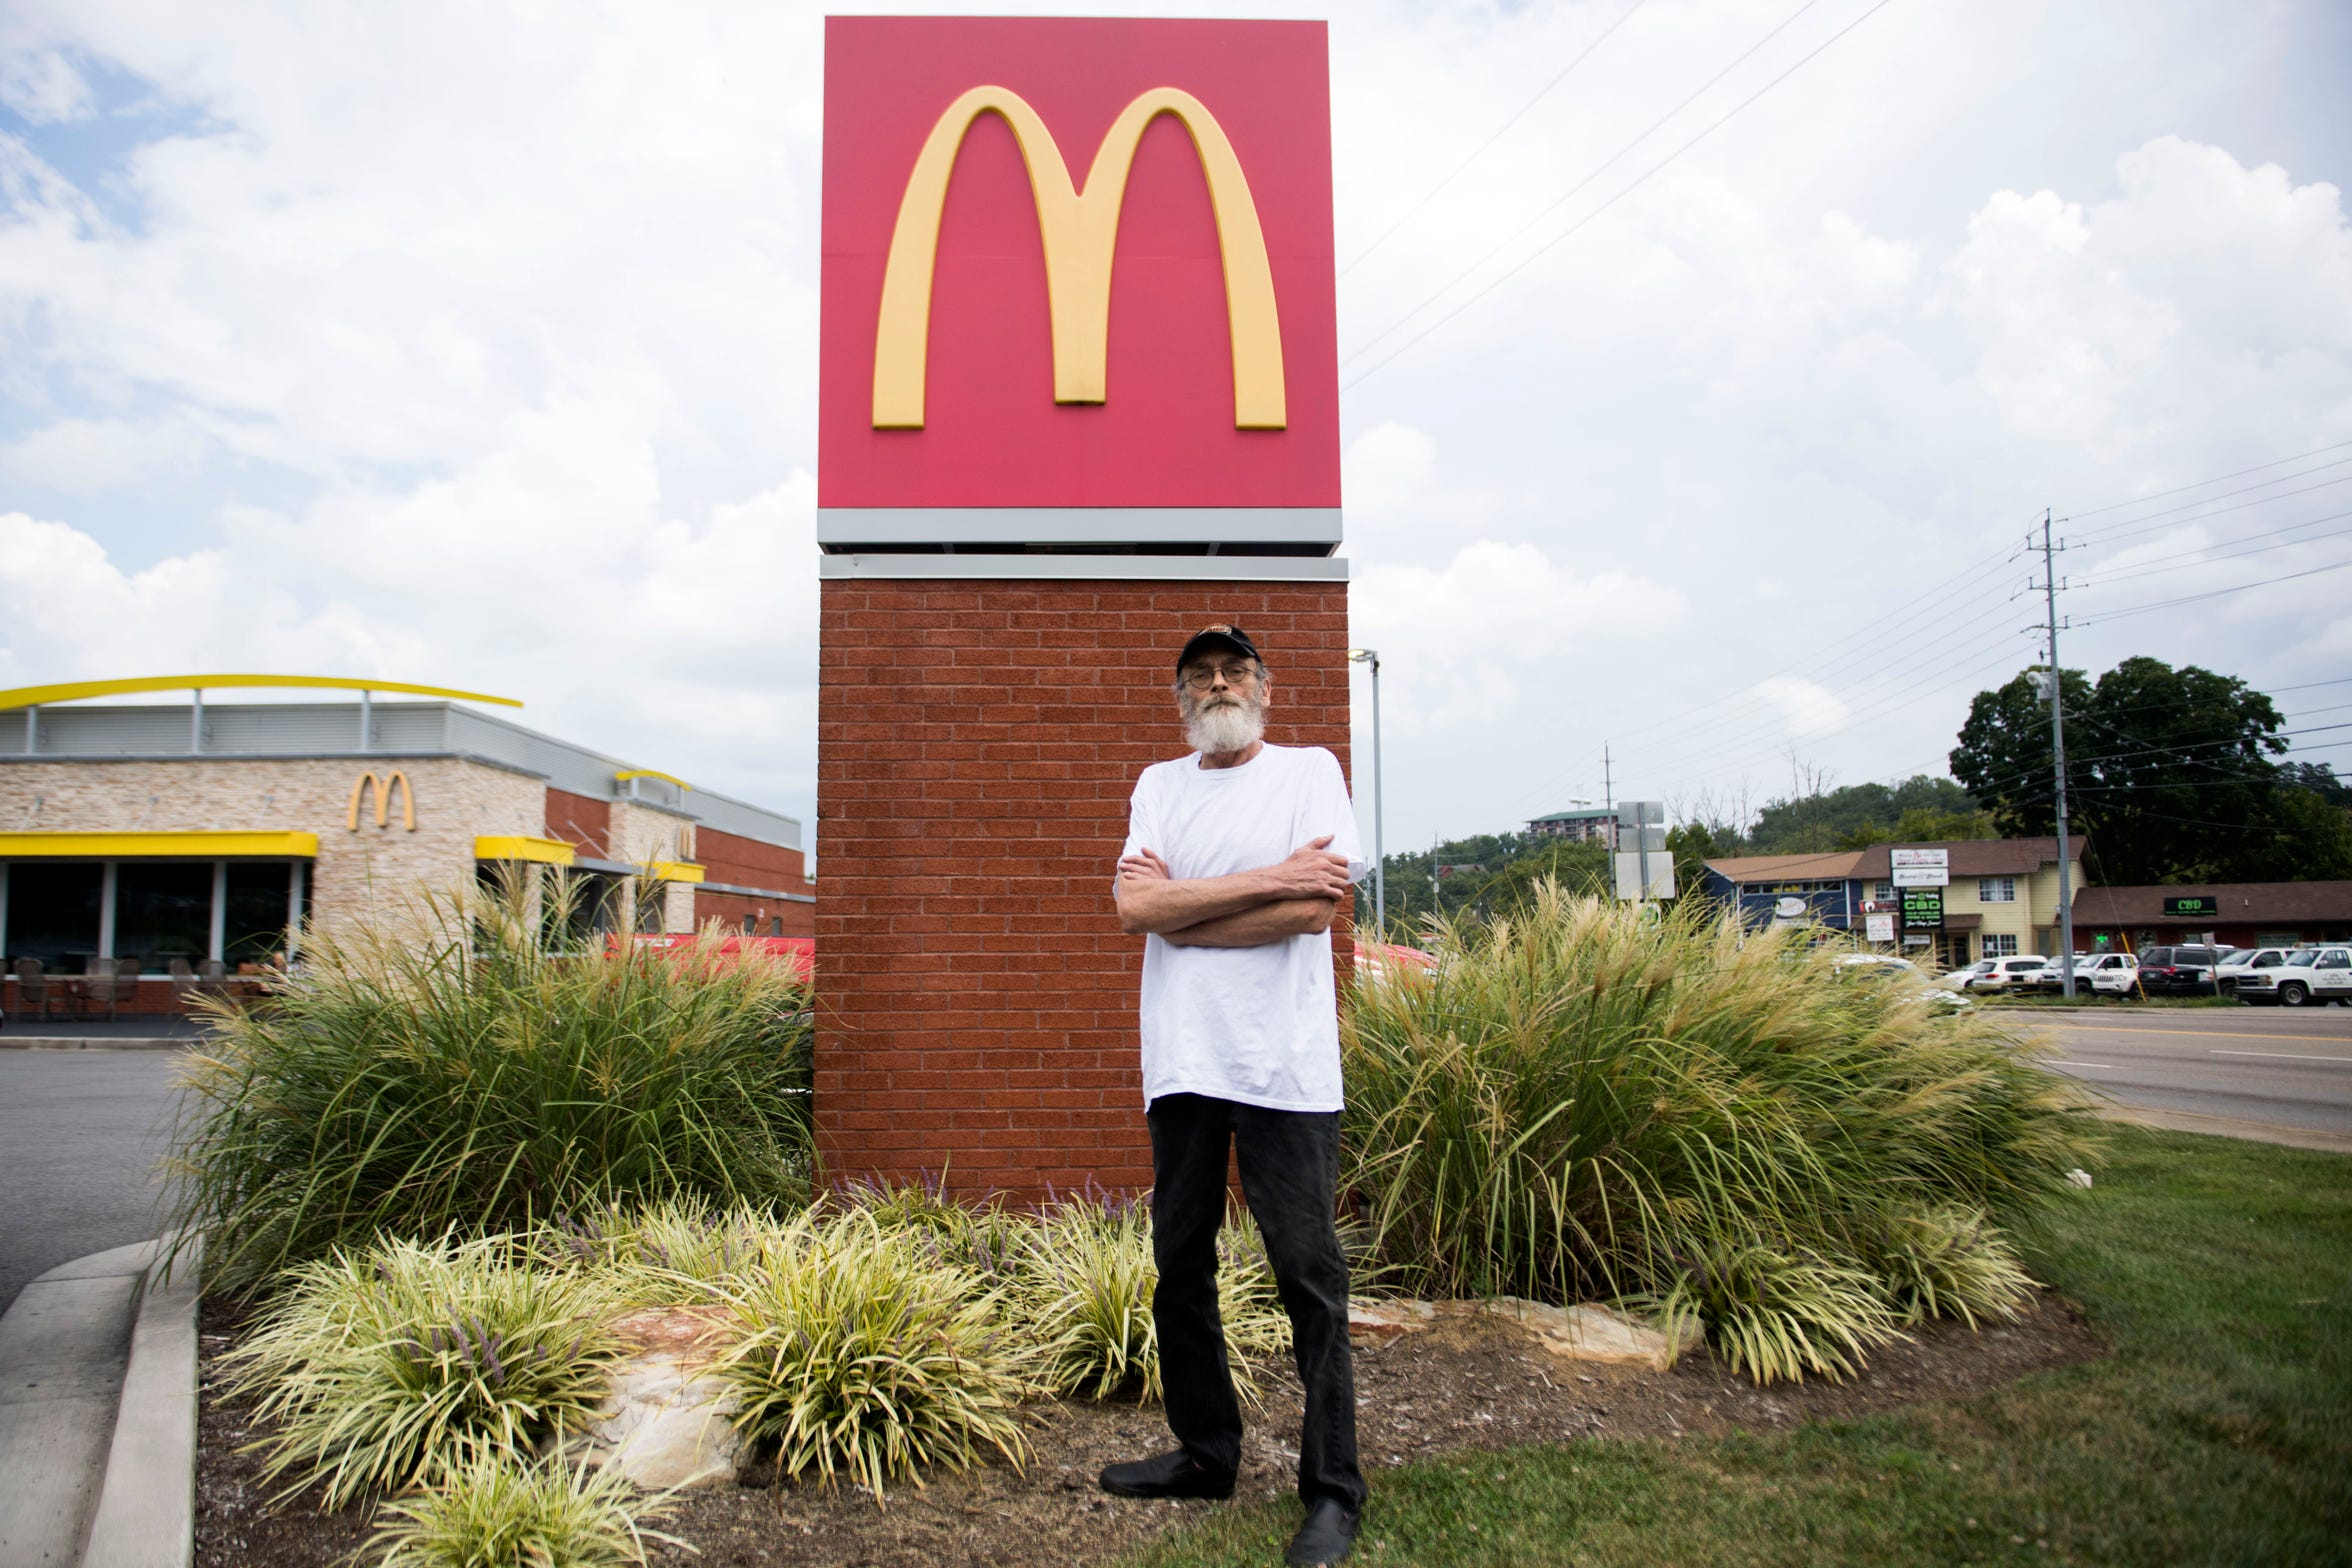 Alan Chrisman worked as a maintenance employee at this Sevierville, Tenn., McDonald's before being diagnosed with stage IV colorectal cancer in November 2017. He's now on his 11th dose of chemotherapy. After his 12th next month, he will return for a scan.